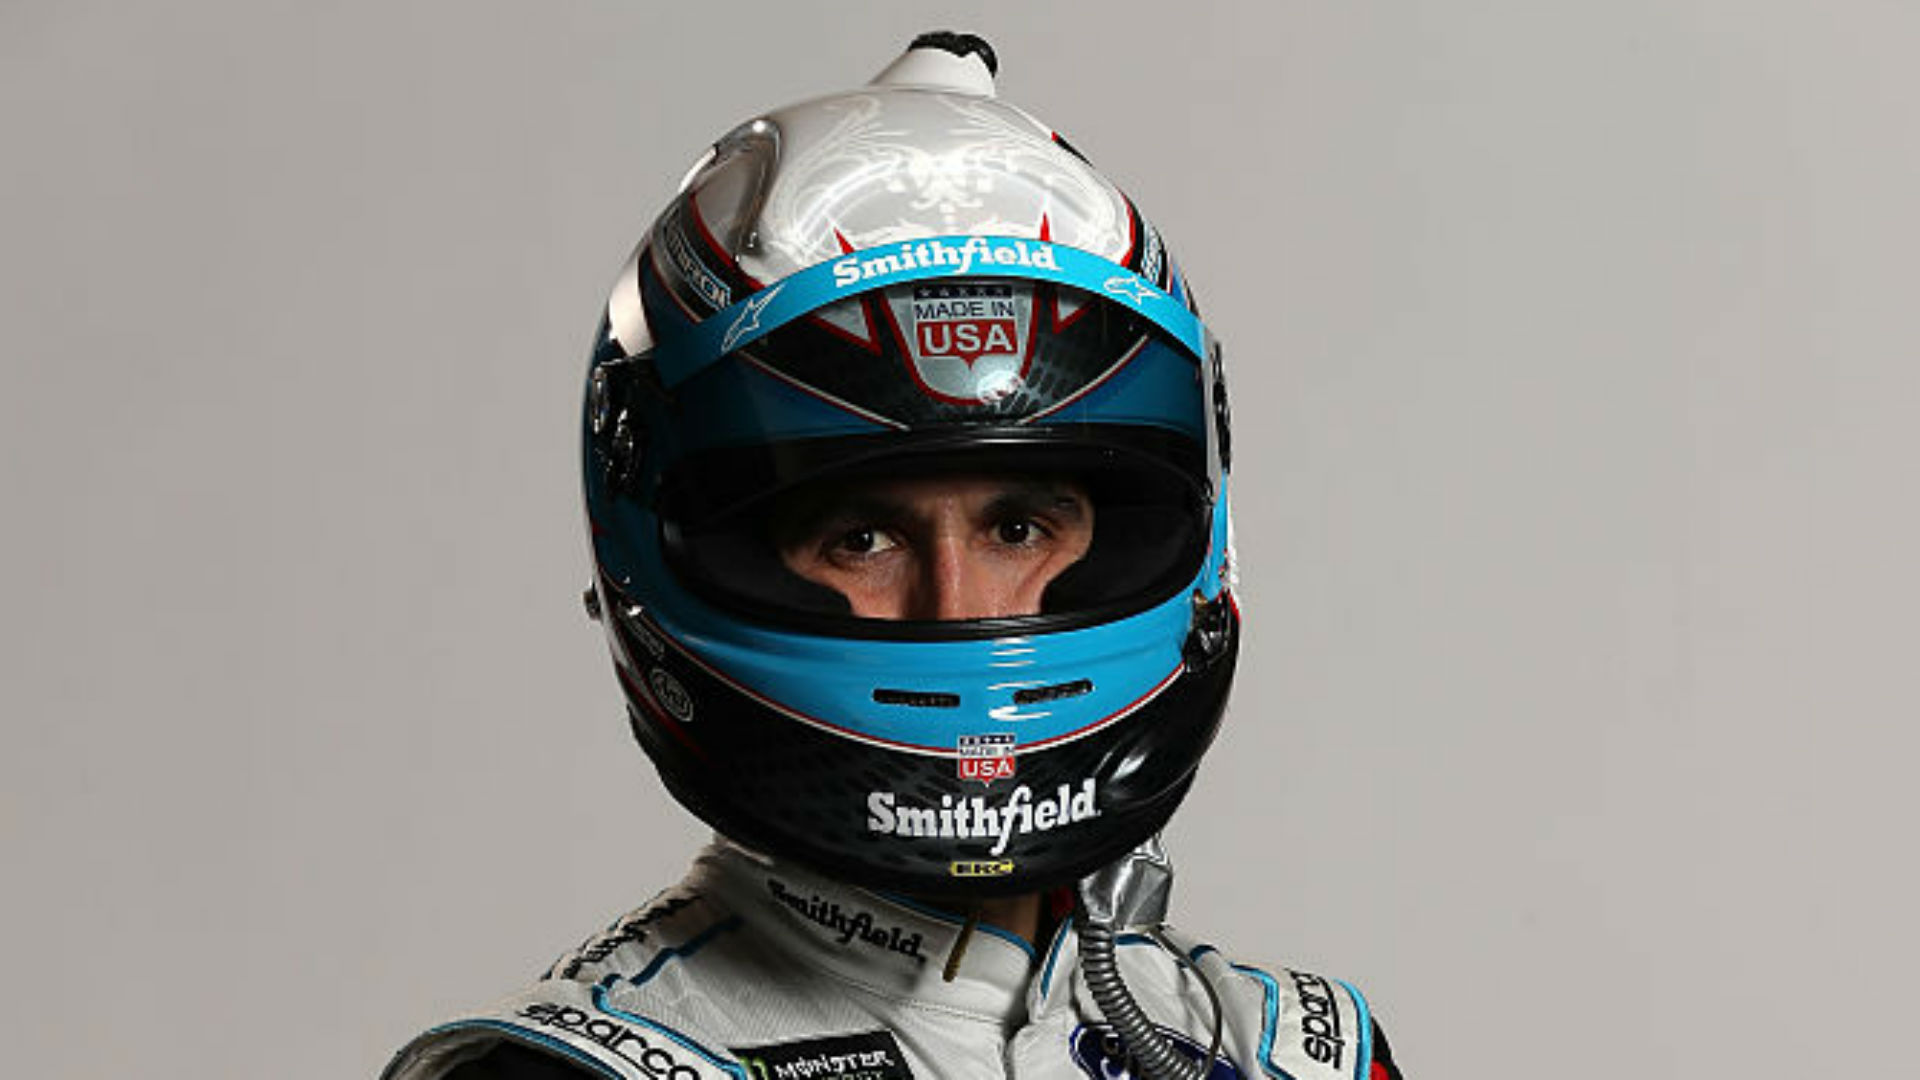 Almirola out of hospital after fracturing a vertebra